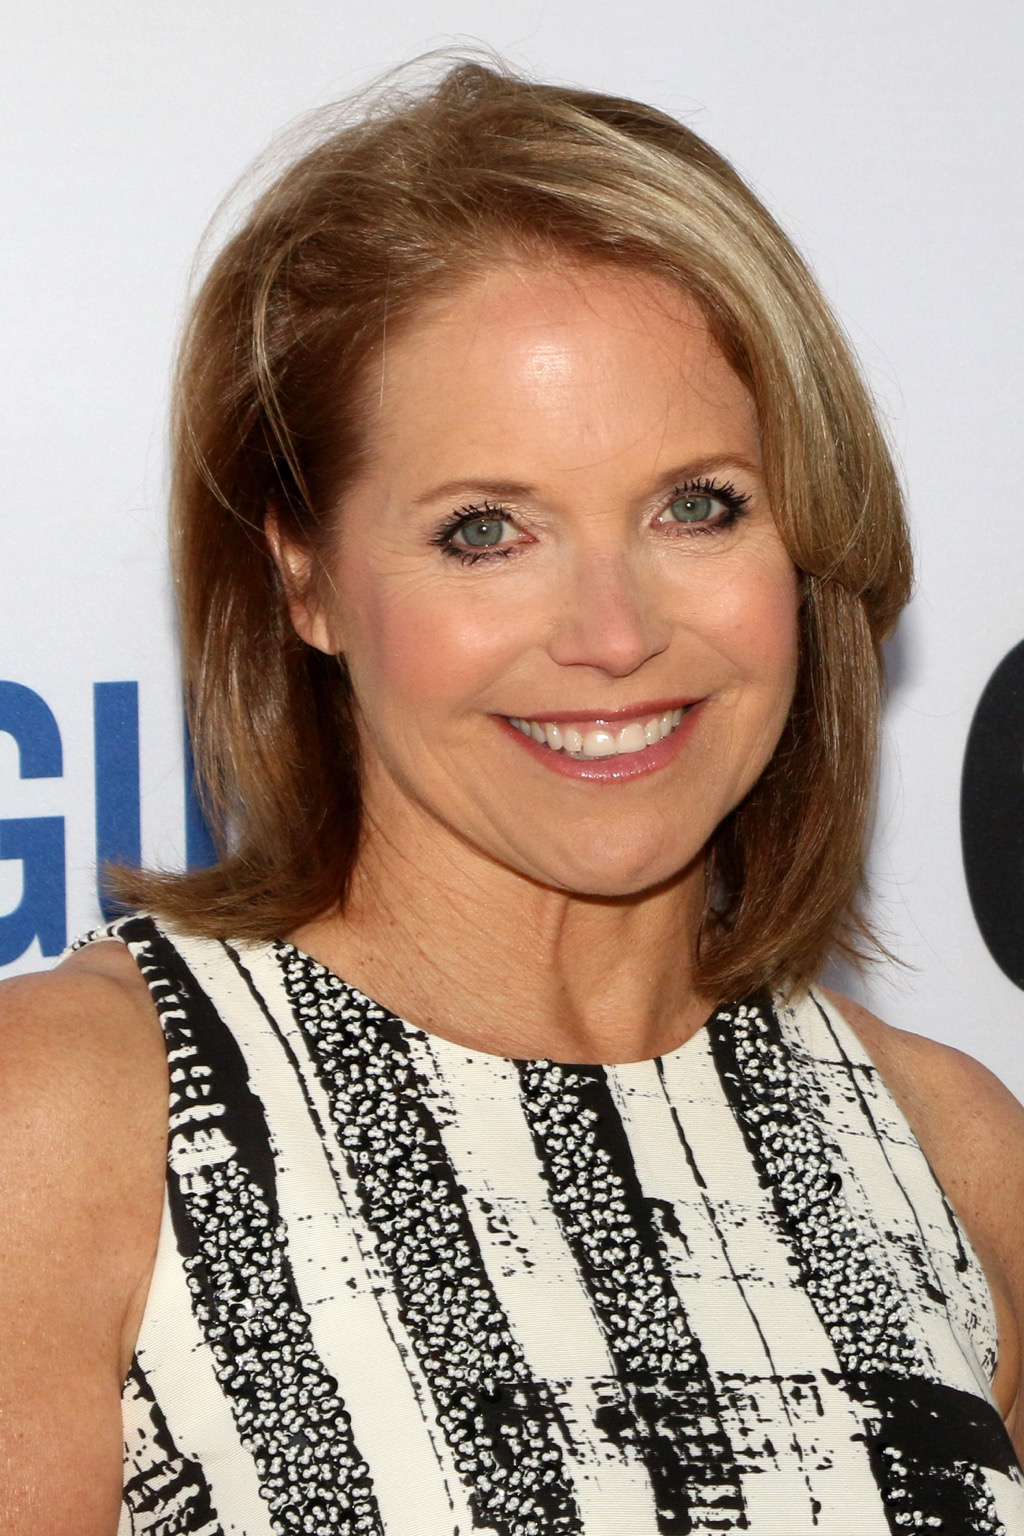 Katie Couric, inspiring quotes